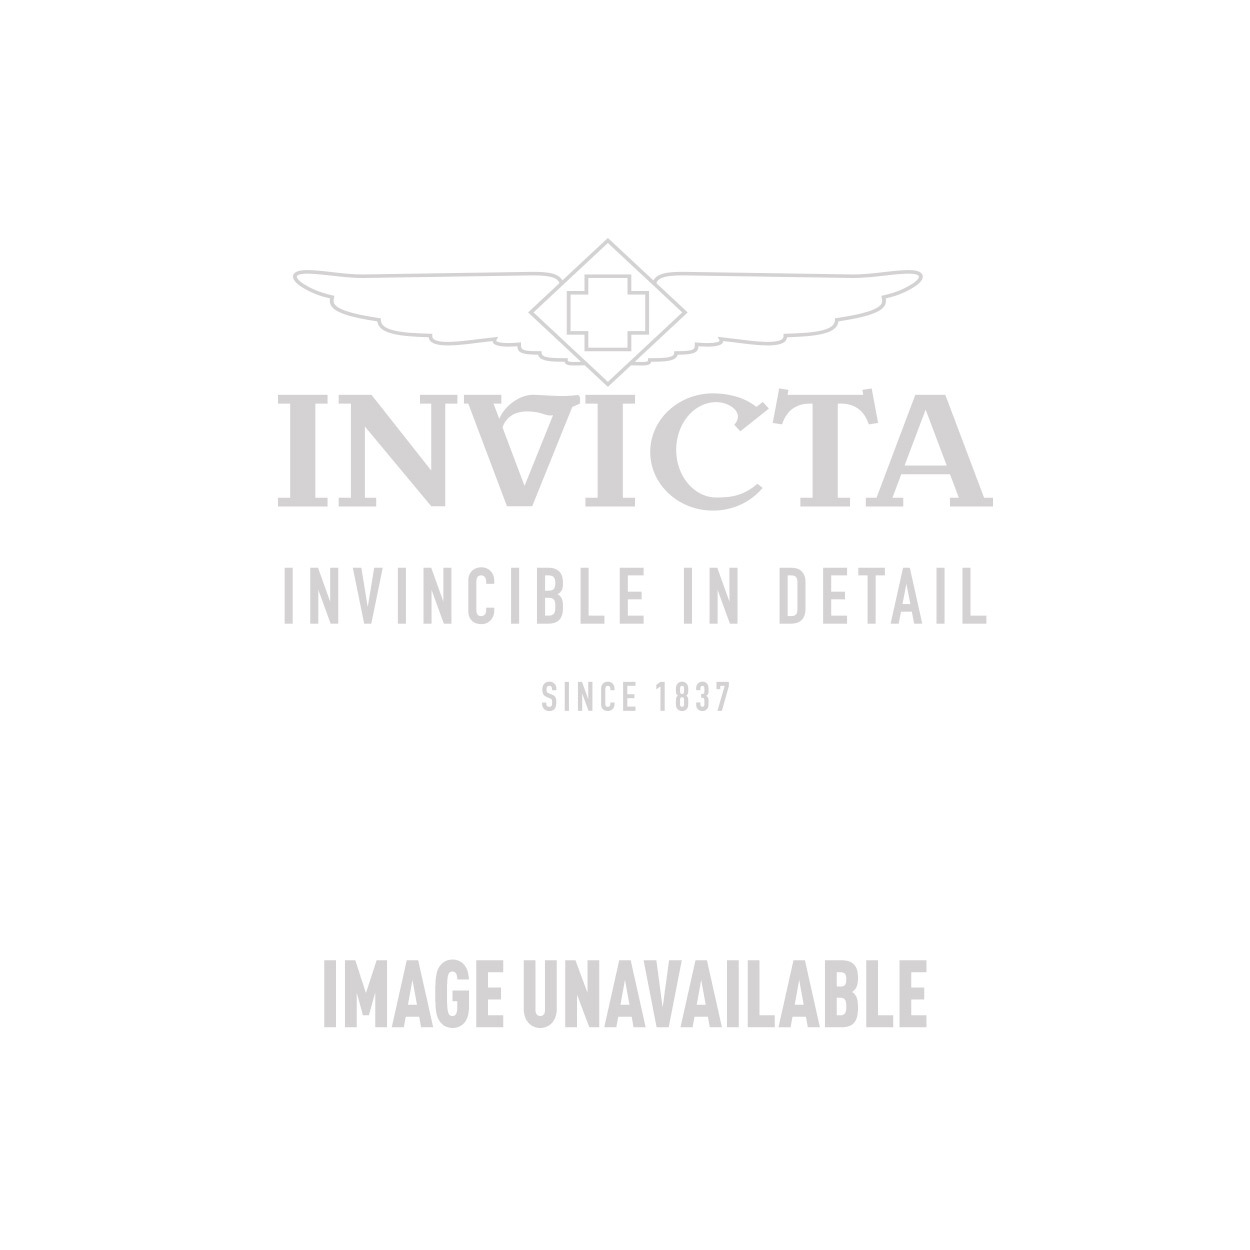 Invicta Specialty Mechanical Watch - Stainless Steel case with Black tone Leather band - Model 18136